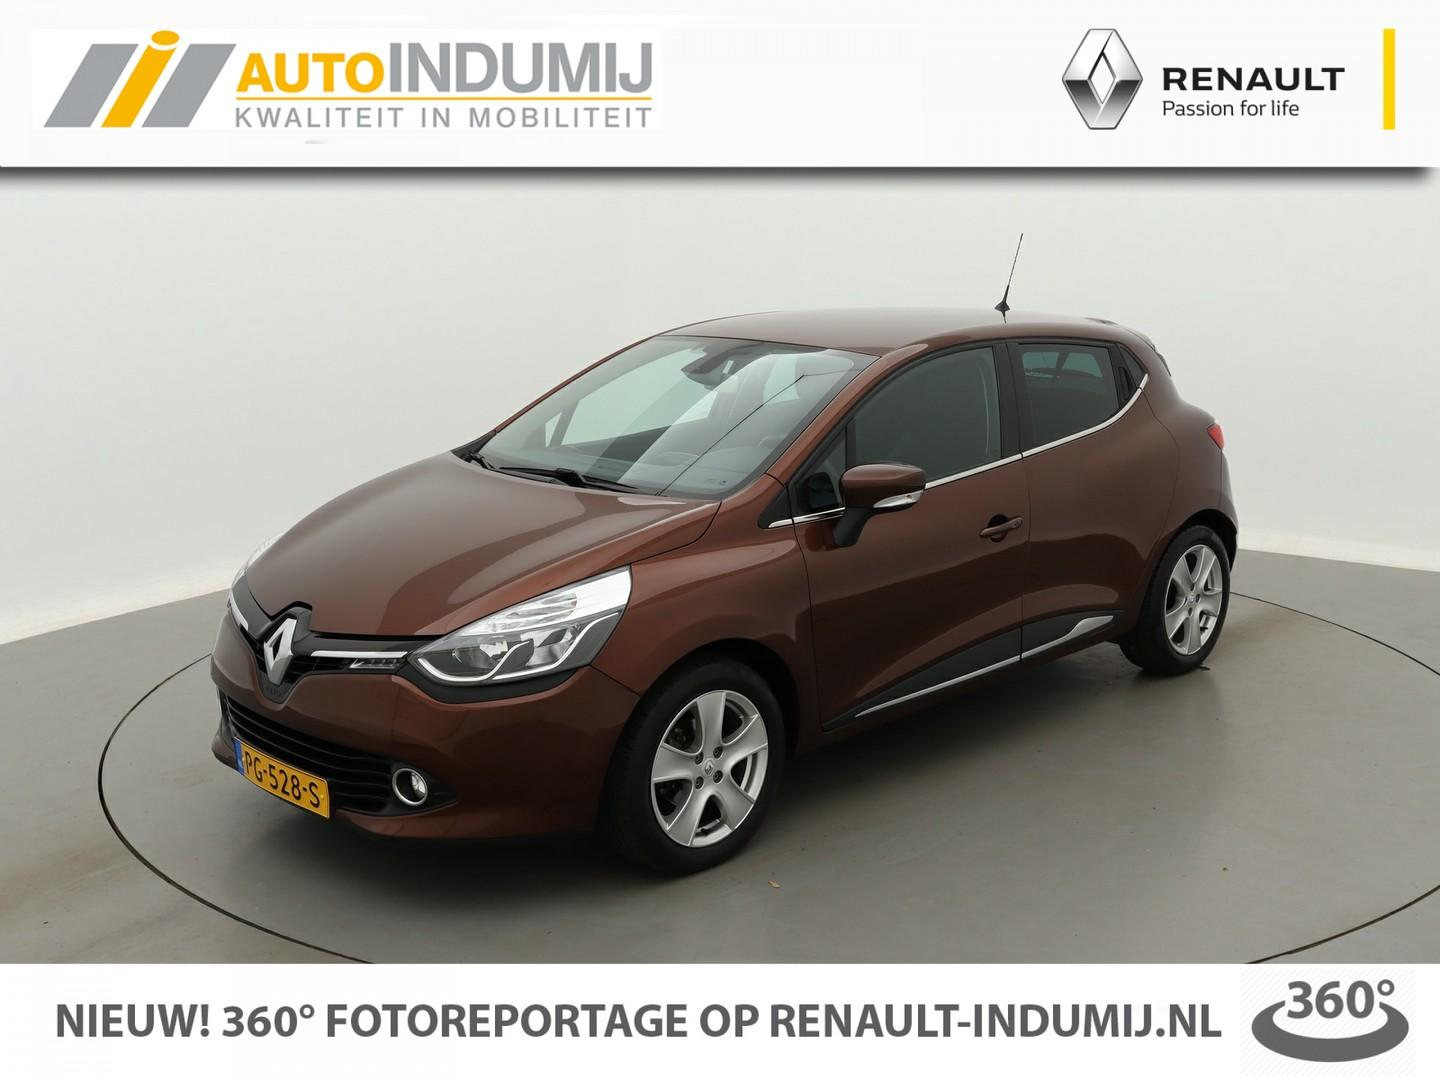 Renault Clio Tce 90 dynamique / luxe uitgevoerd! // navi / keyless / climate control